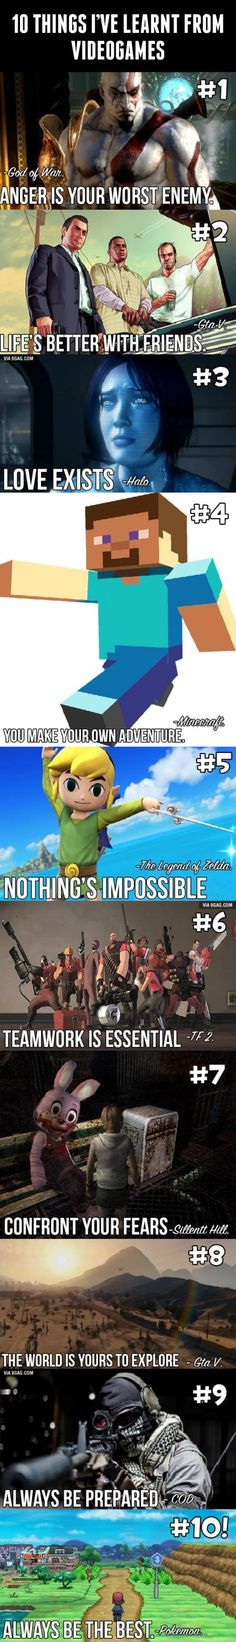 10 Thing I've Learnt From Video Games, Click the link to view today's funniest pictures!